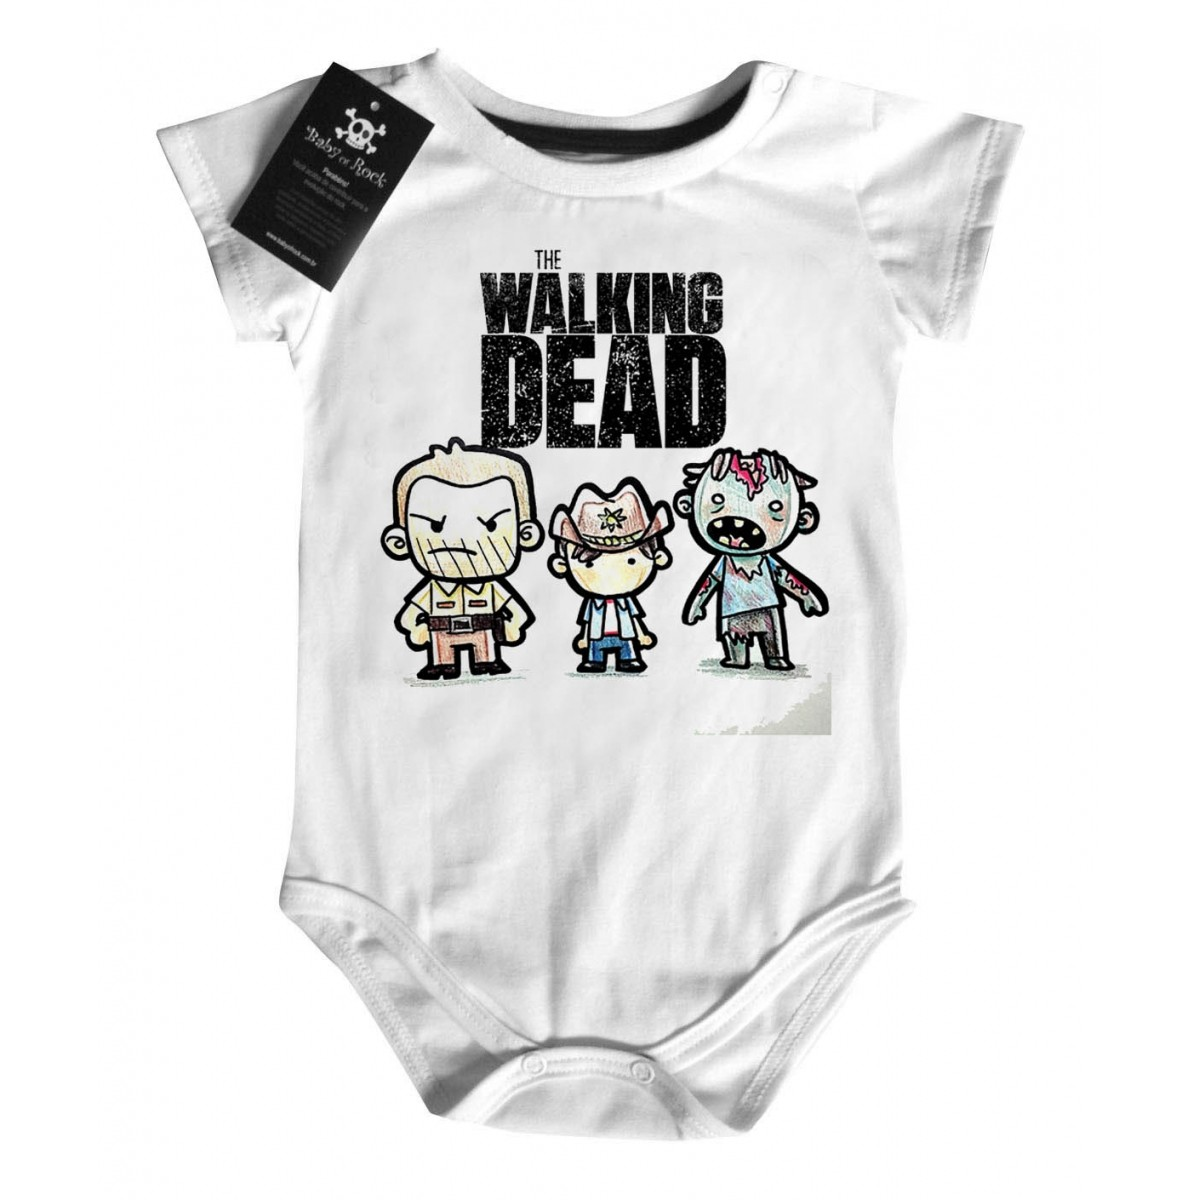 Body Bebê the walking dead - White  - Baby Monster S/A